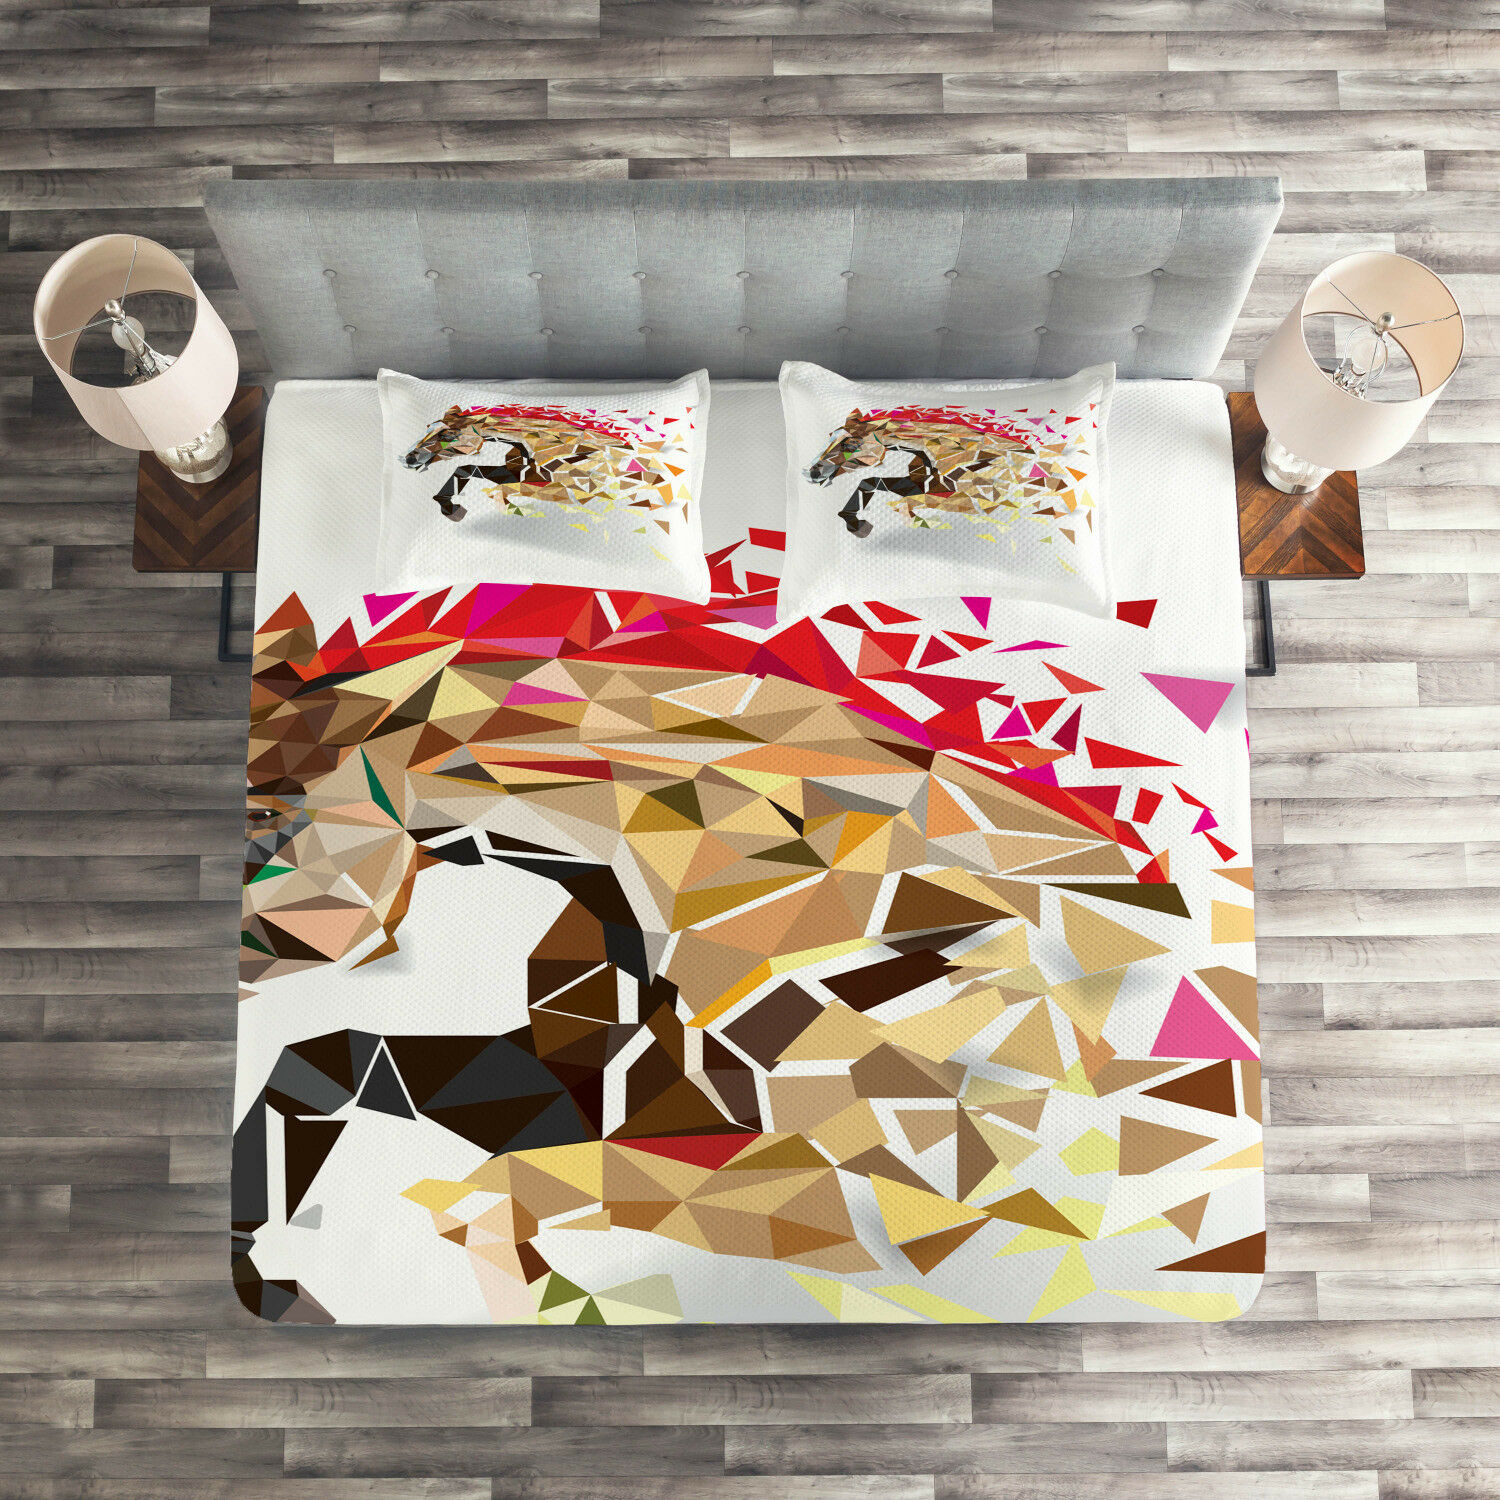 Animal Quilted Coverlet & Pillow Shams Set, Abstract Art Wild Horse Print